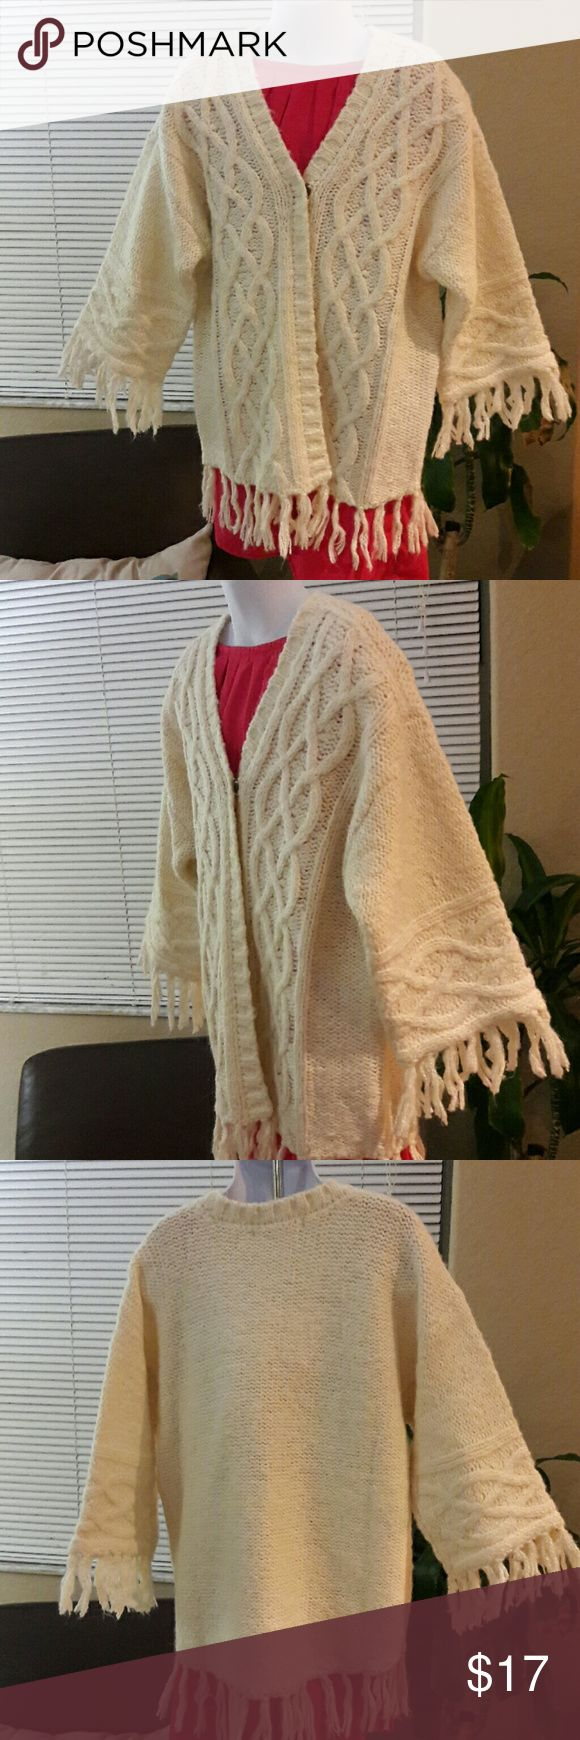 Girl's Cardigan cream jacket coat Omg this is a beautiful Cream Jacket!! Never used. With tag. Forever 21 Jackets & Coats